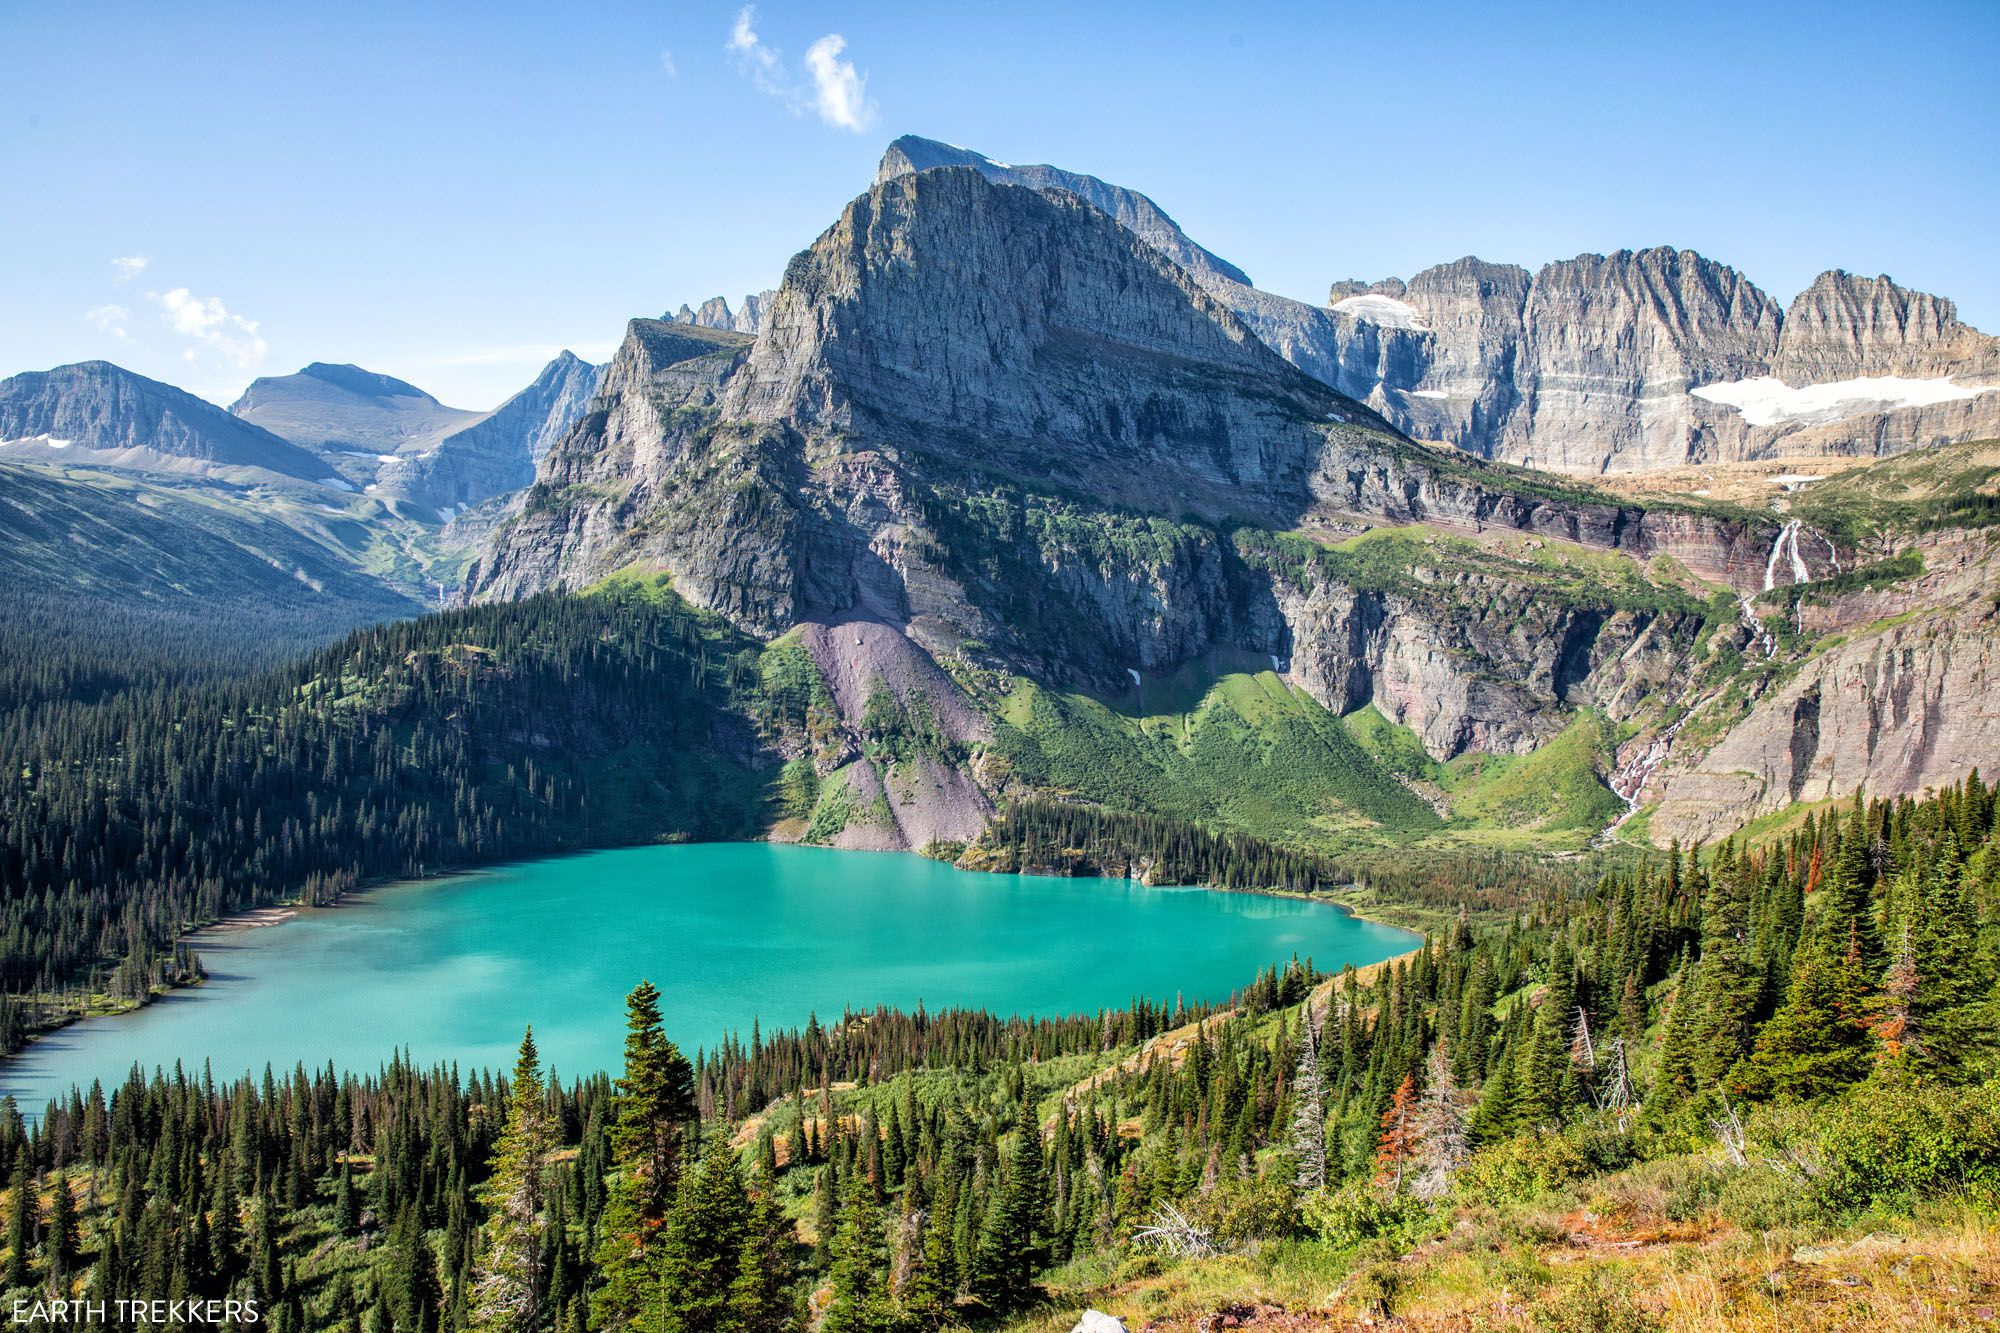 Best things to do in Glacier